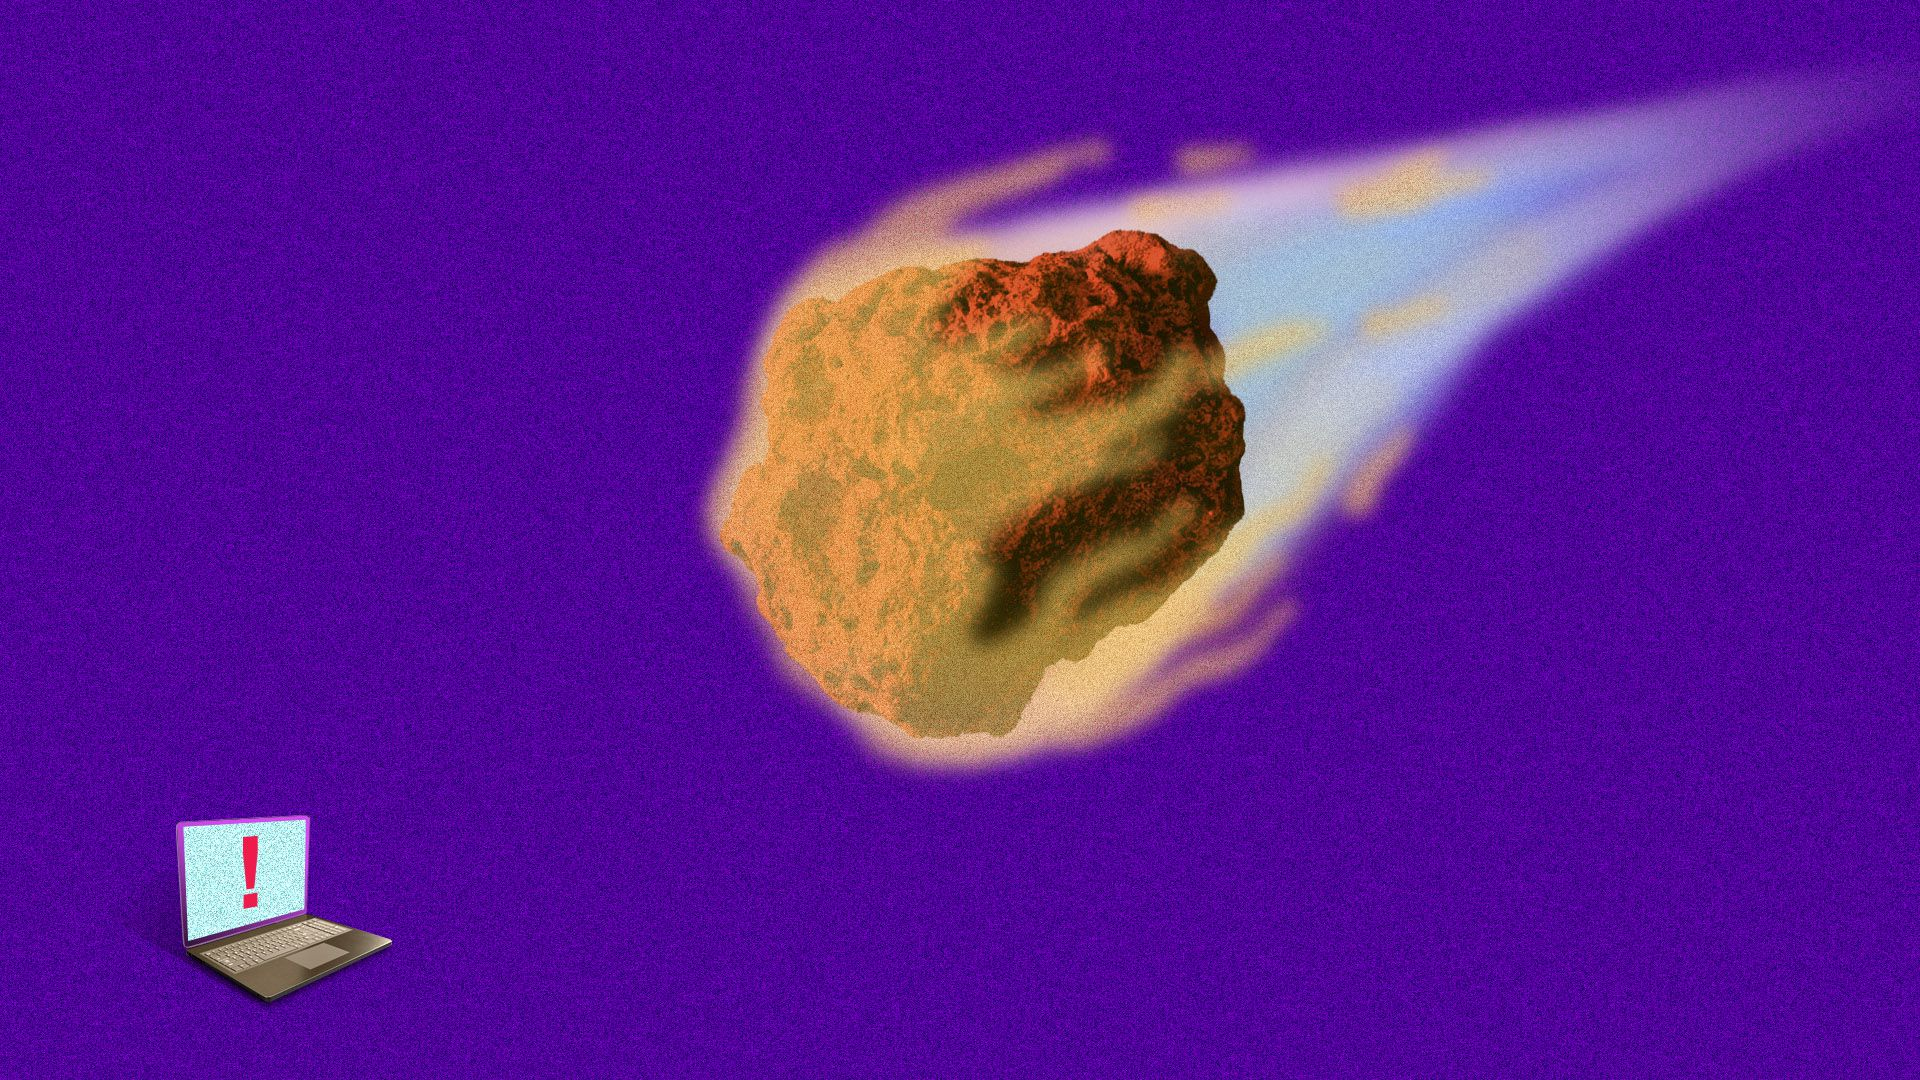 A meteor hurtles toward an open laptop